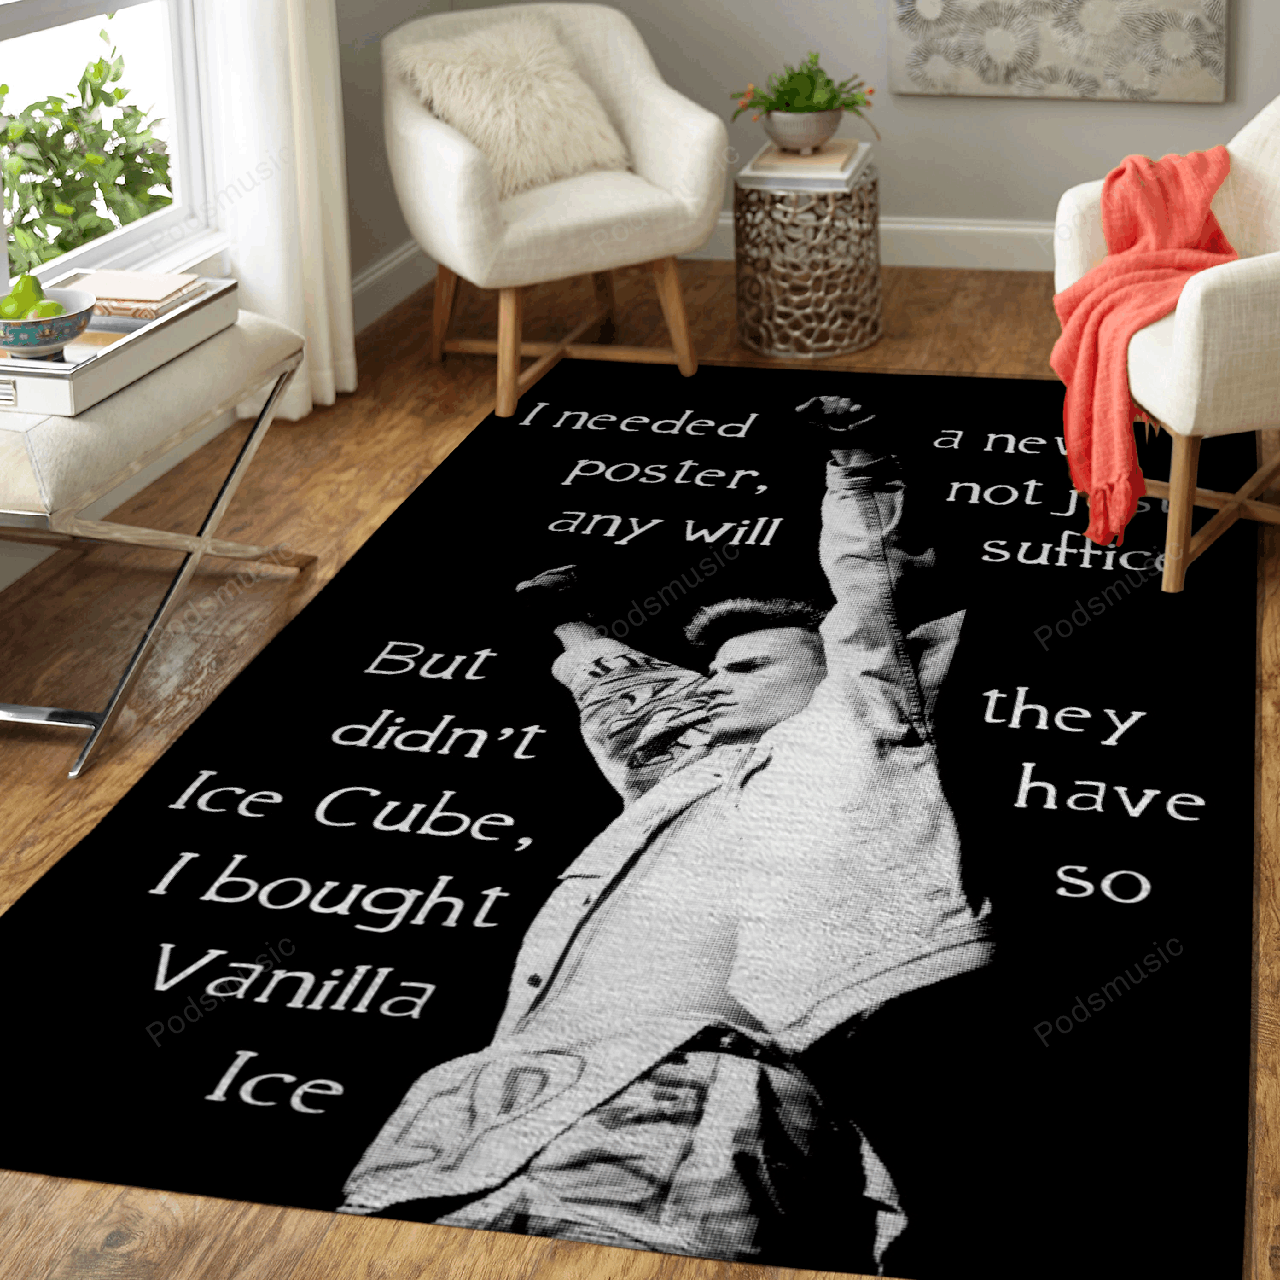 Vanilla Ice Cube - Music Film And Tv Art For Fans Area Rug Living Room Carpet Floor Decor